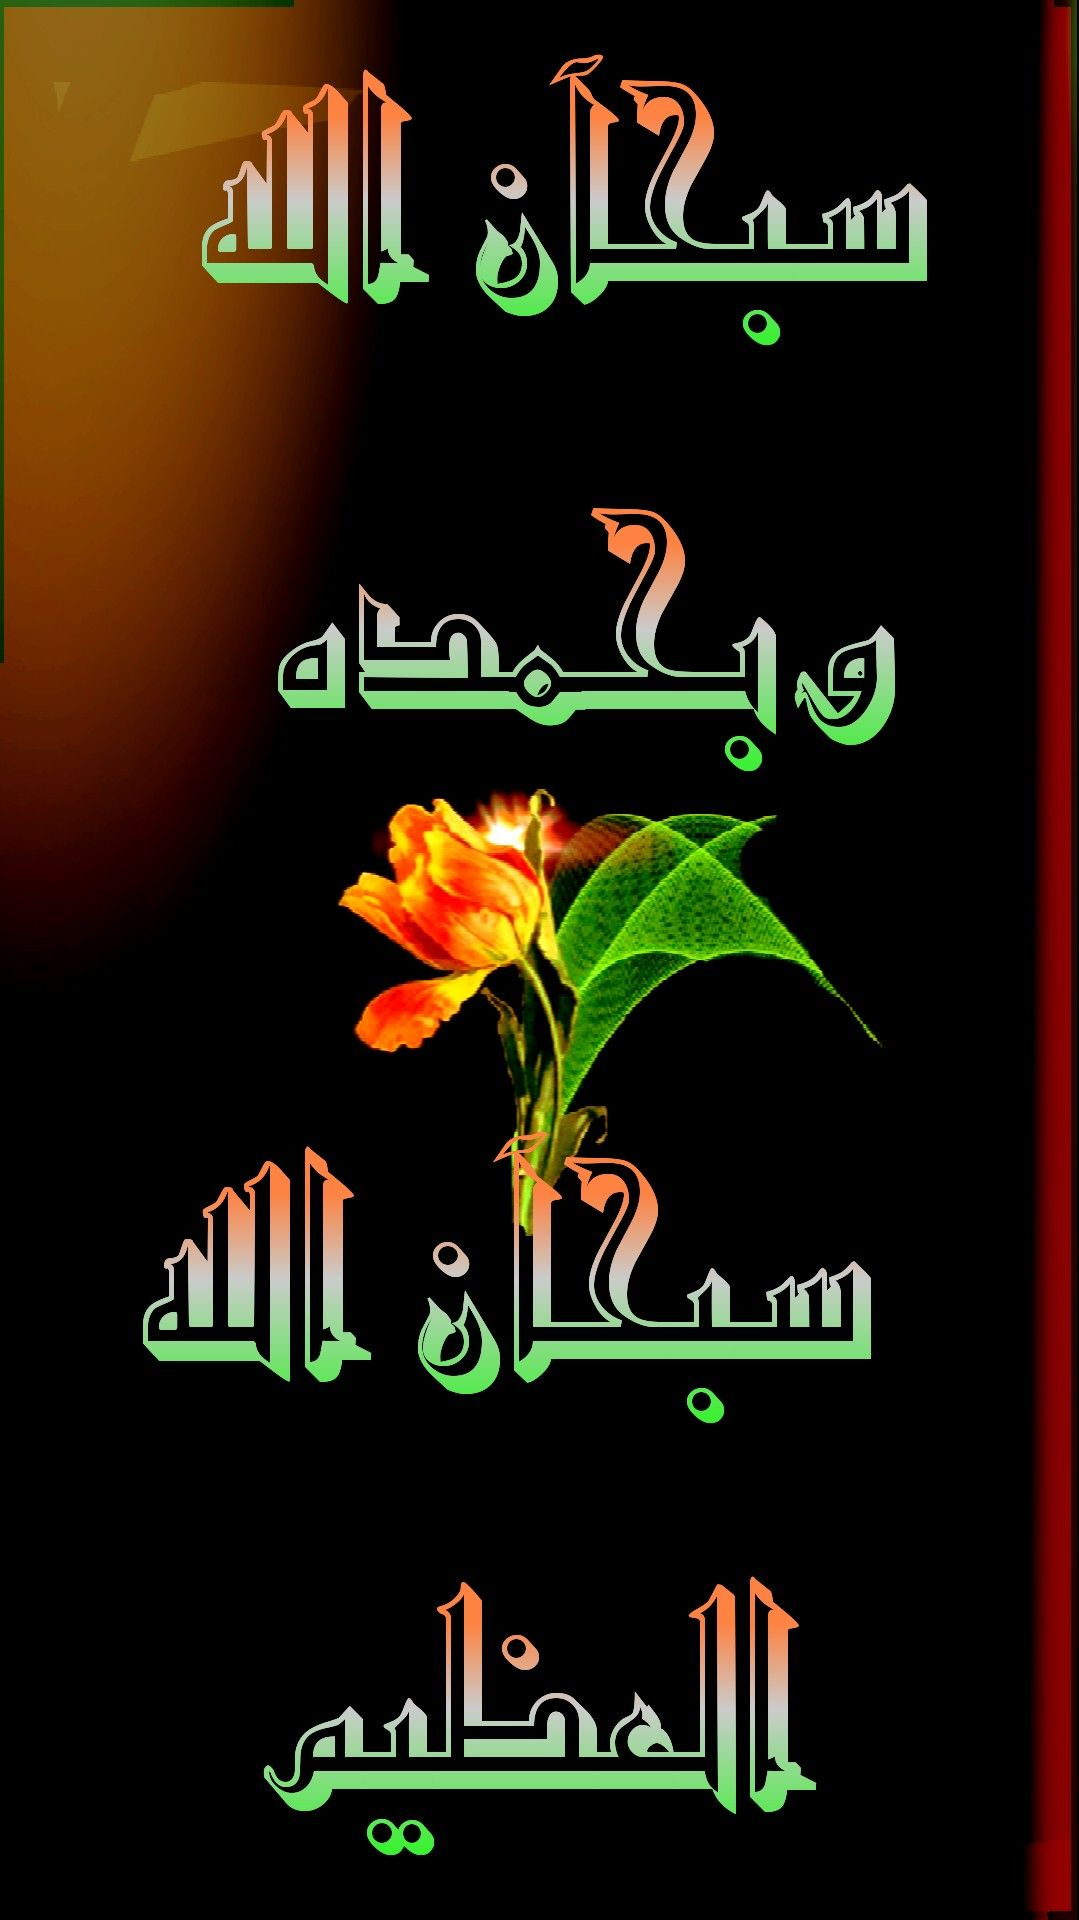 Desertrose ف س ب ح ان الله ح ين ت م س ون و ح ين ت ص ب ح ون و ل ه ال ح م د ف ي الس م او ات Islamic Pictures Islamic Quotes Learning Graphic Design